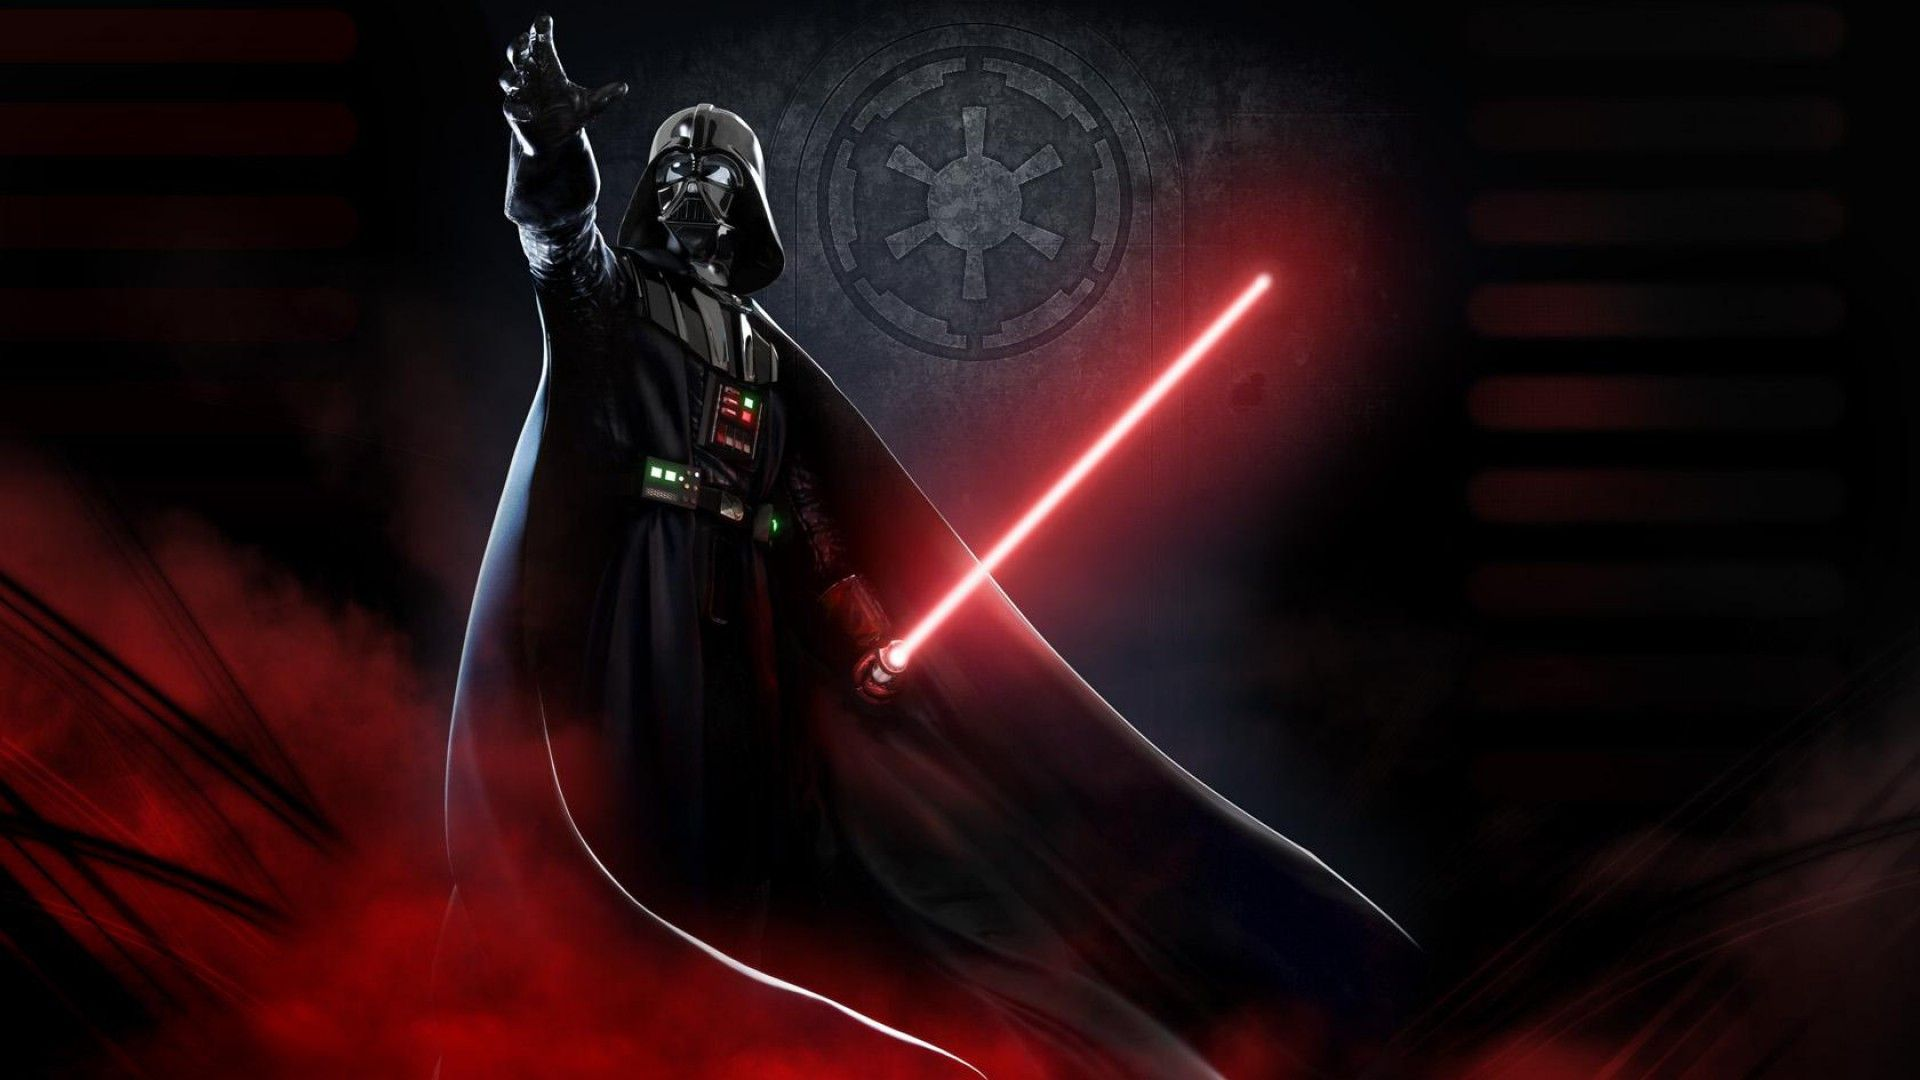 Free Download Star Wars 1080p Wallpapers 1920x1080 For Your